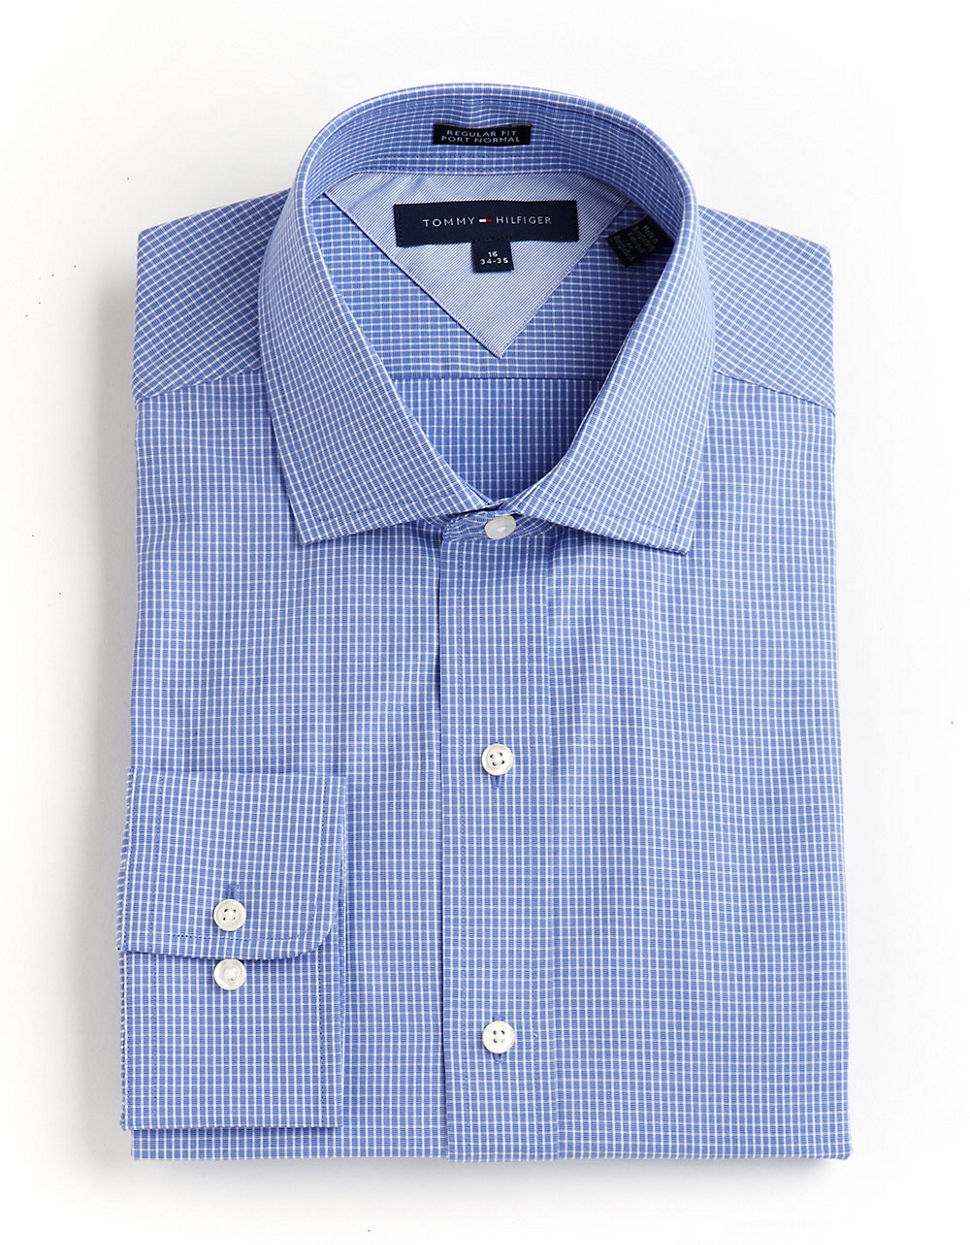 Tommy hilfiger Tommy Hilfiger Ls Regular Fit Dress Shirt blue 175  34/35